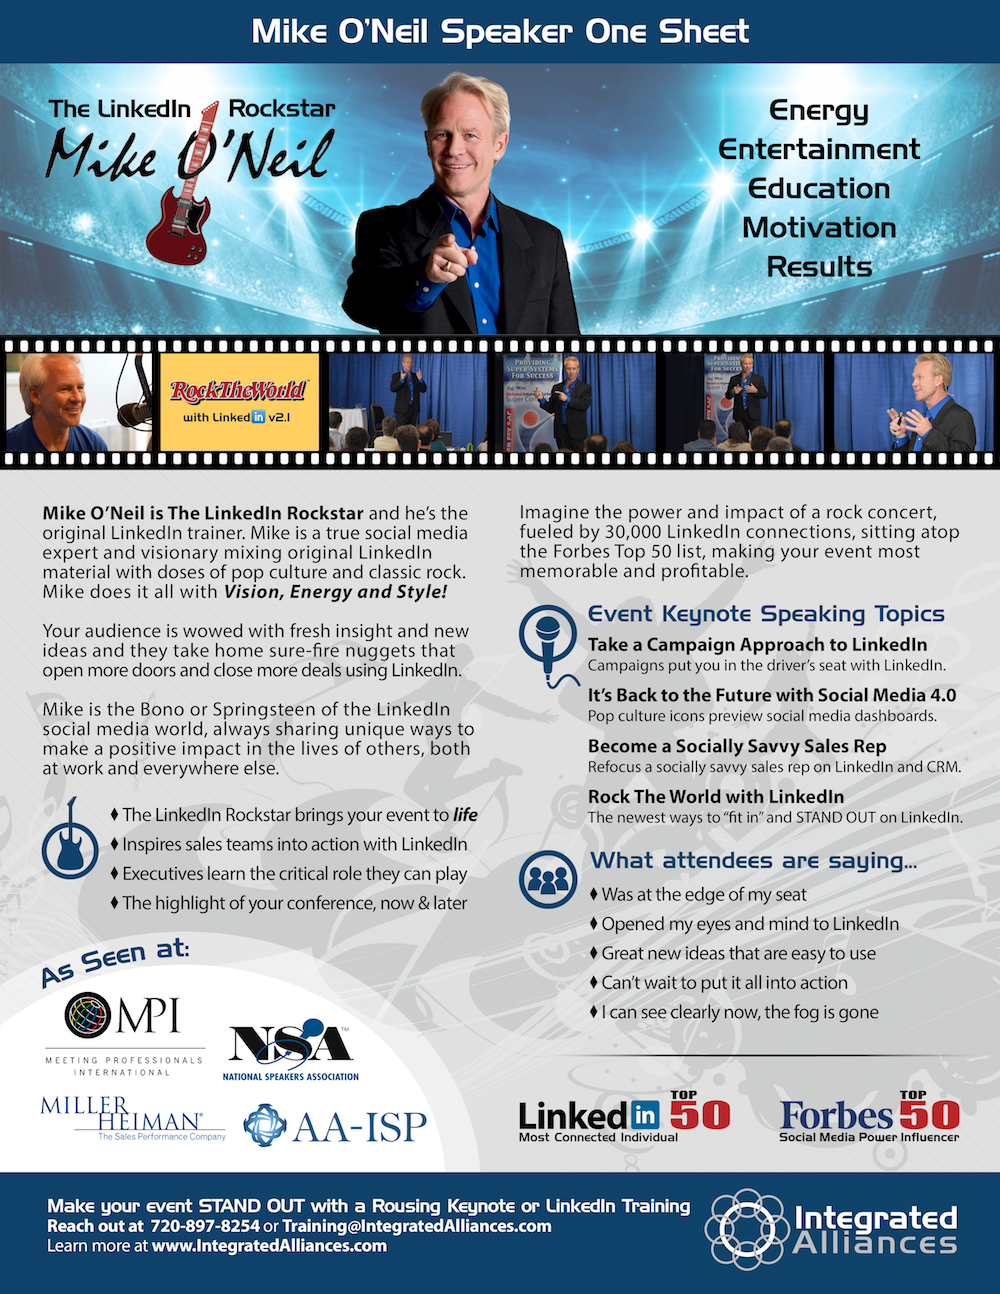 Mike O'Neil Speaker One Sheet 2017